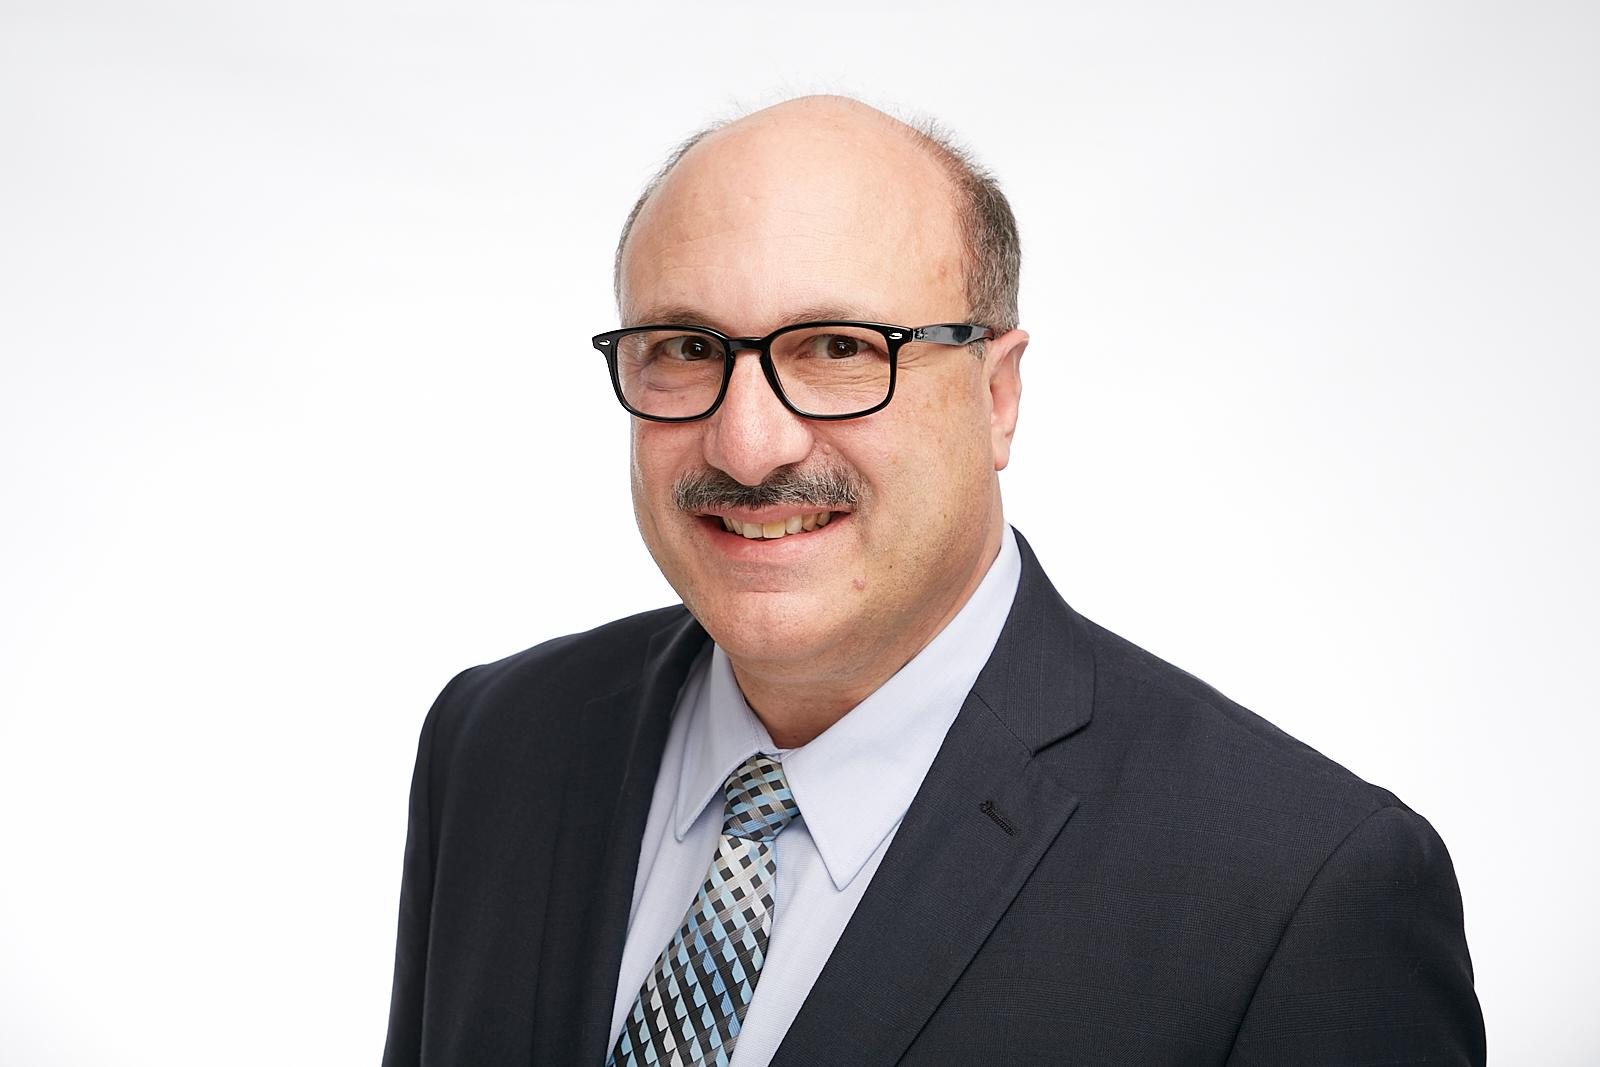 Dr. William F. Buffone, Board Certified Podiatrist & Surgeon Serving Southold, East Setauket, and Riverhead, NY